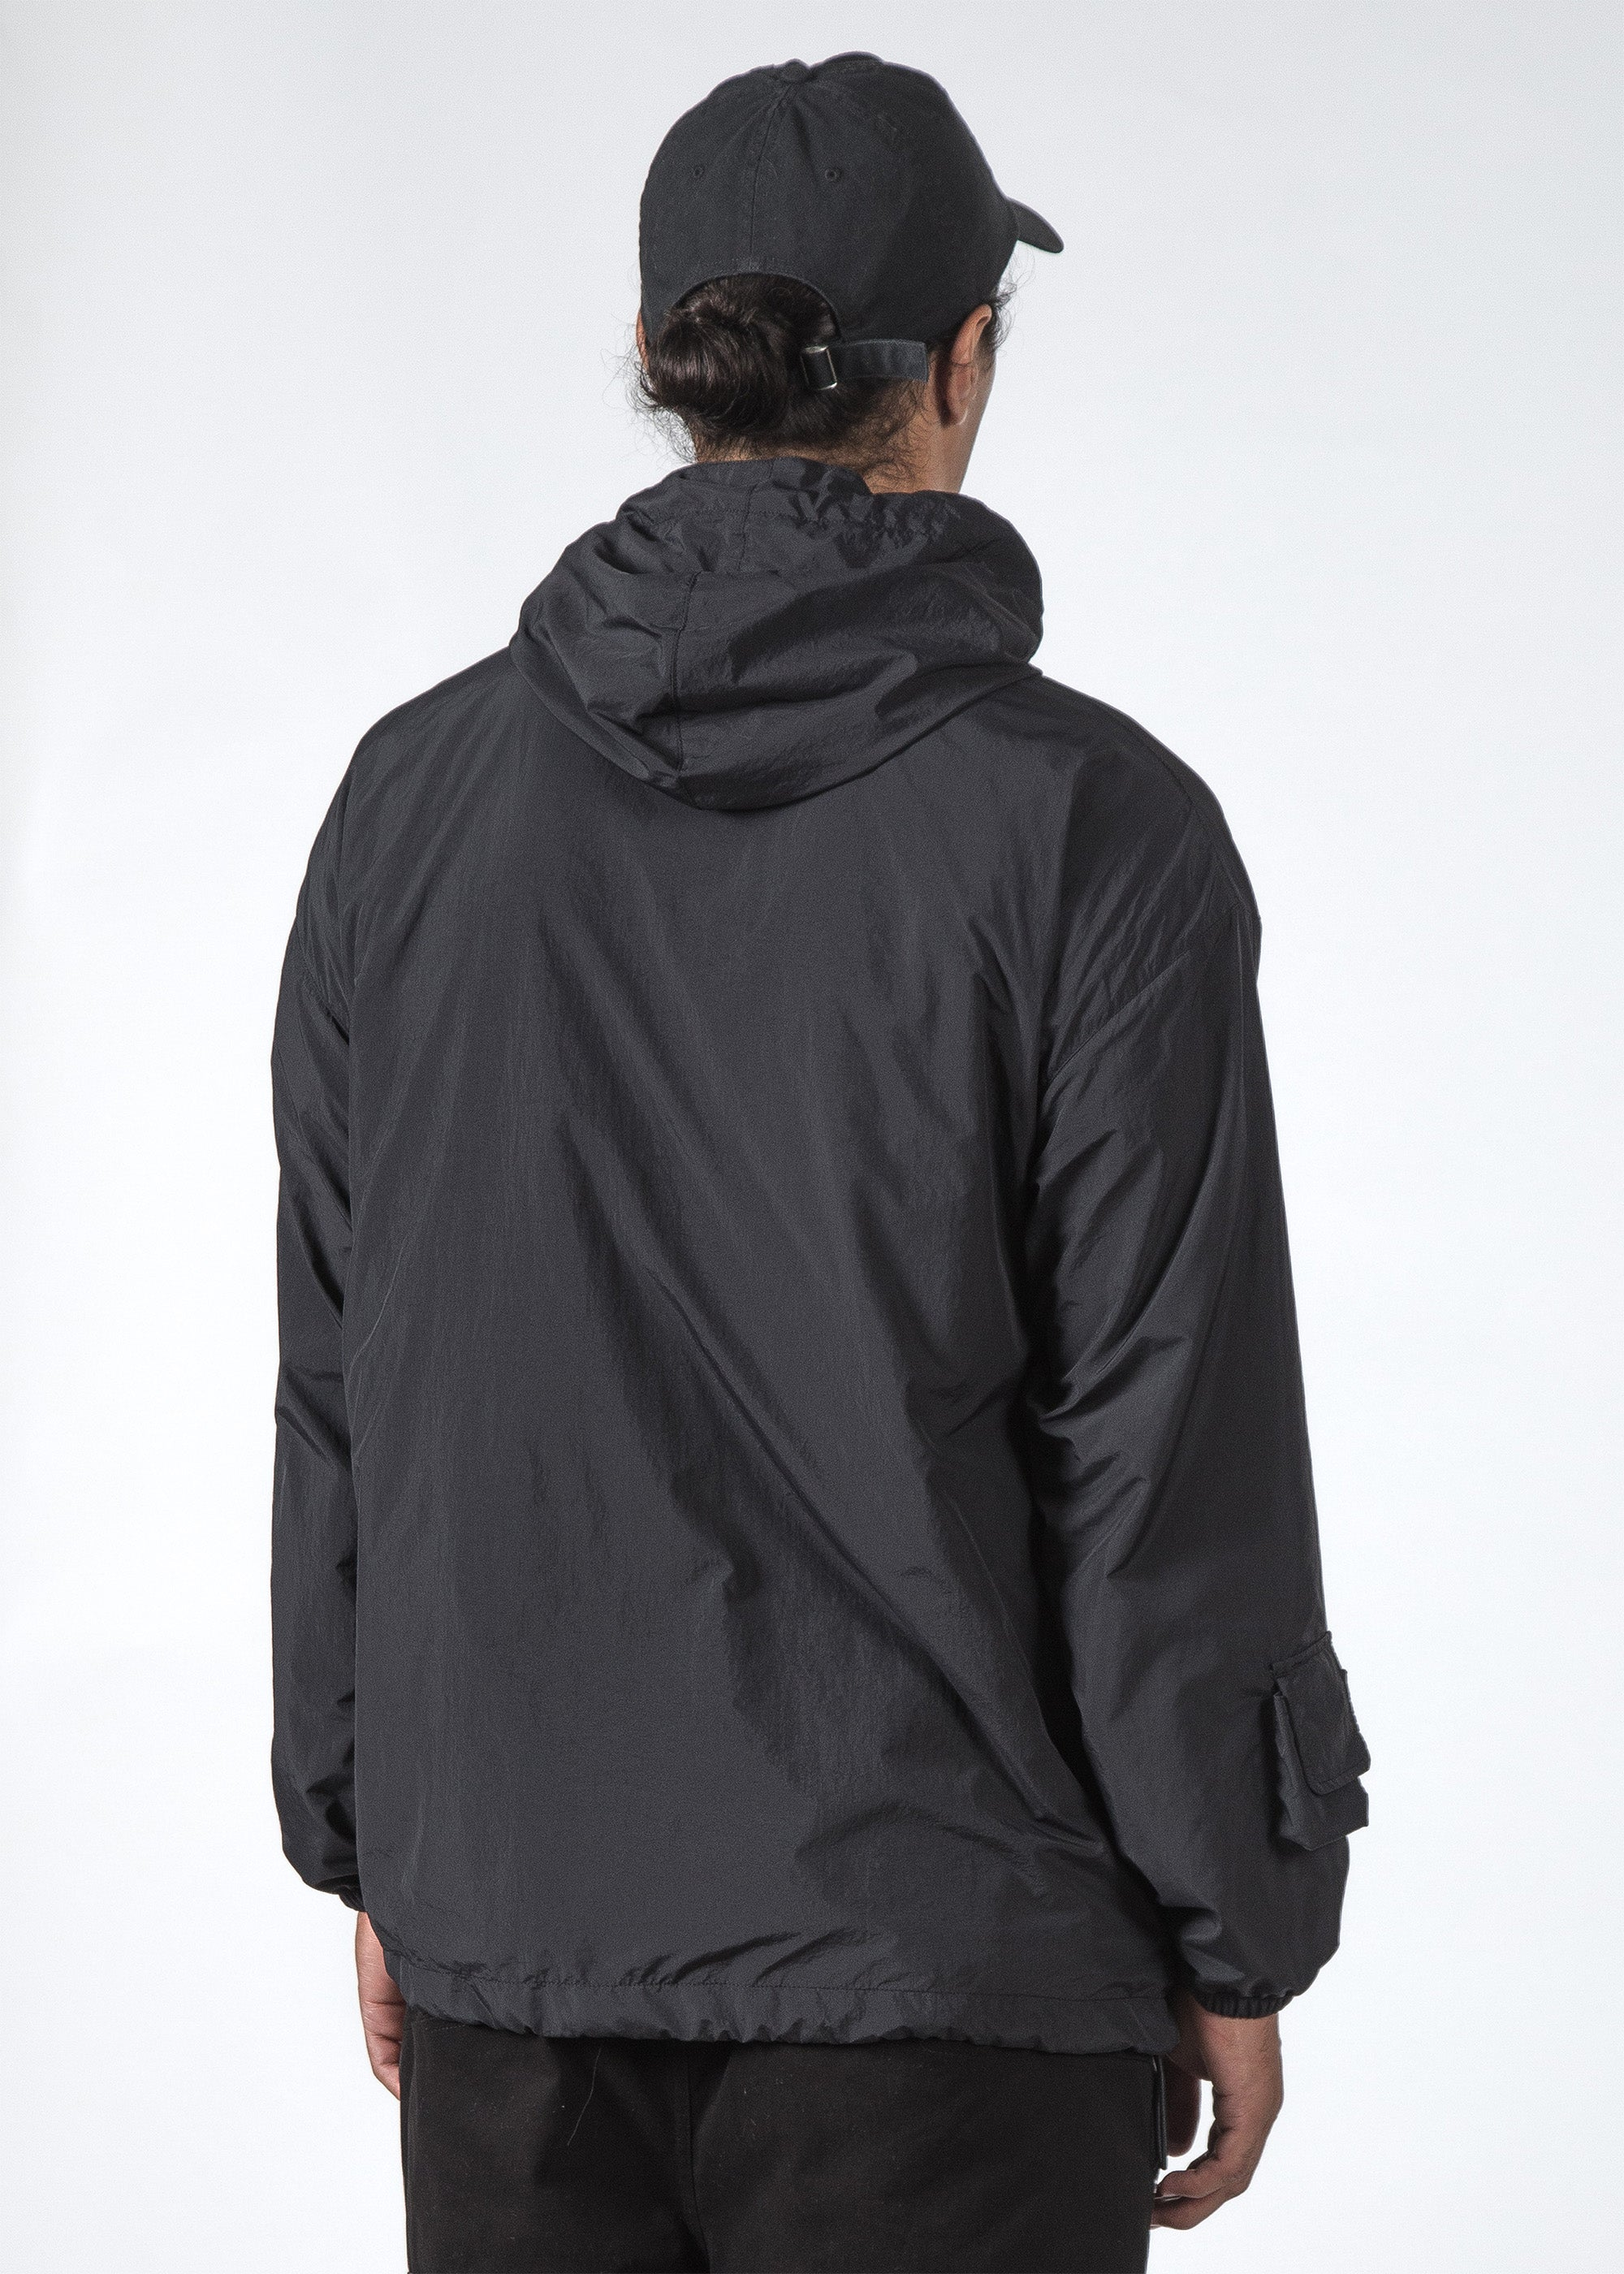 THE CASE JACKET BLACK